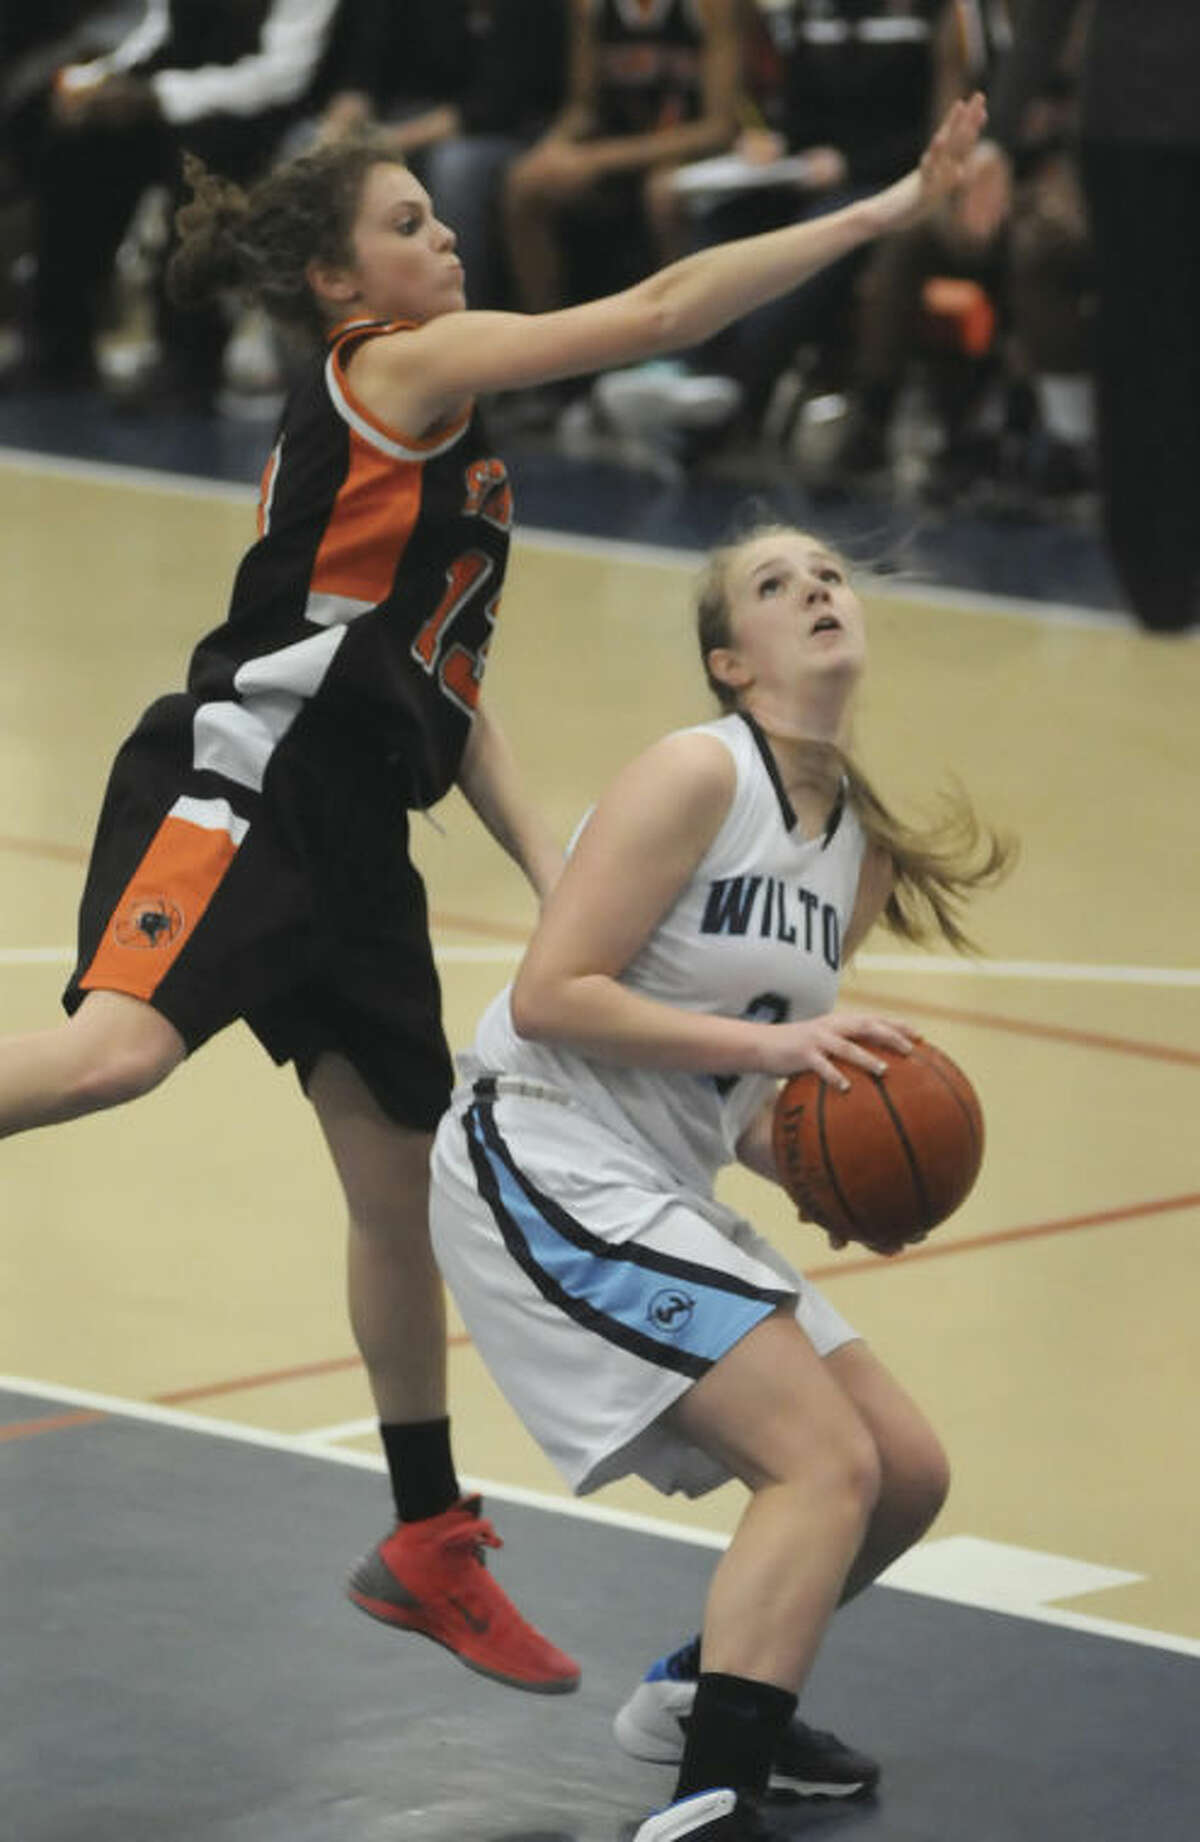 Hour photo/John Nash Wilton's Erin Cunningham, right, looks toward the hoop right before getting fouled by Stamford's Maxine Fodiman during the first half of Monday's FCIAC girls basketball game at the Zeoli Field House. Stamford ended Wilton's undefeated run with a 55-50 win.